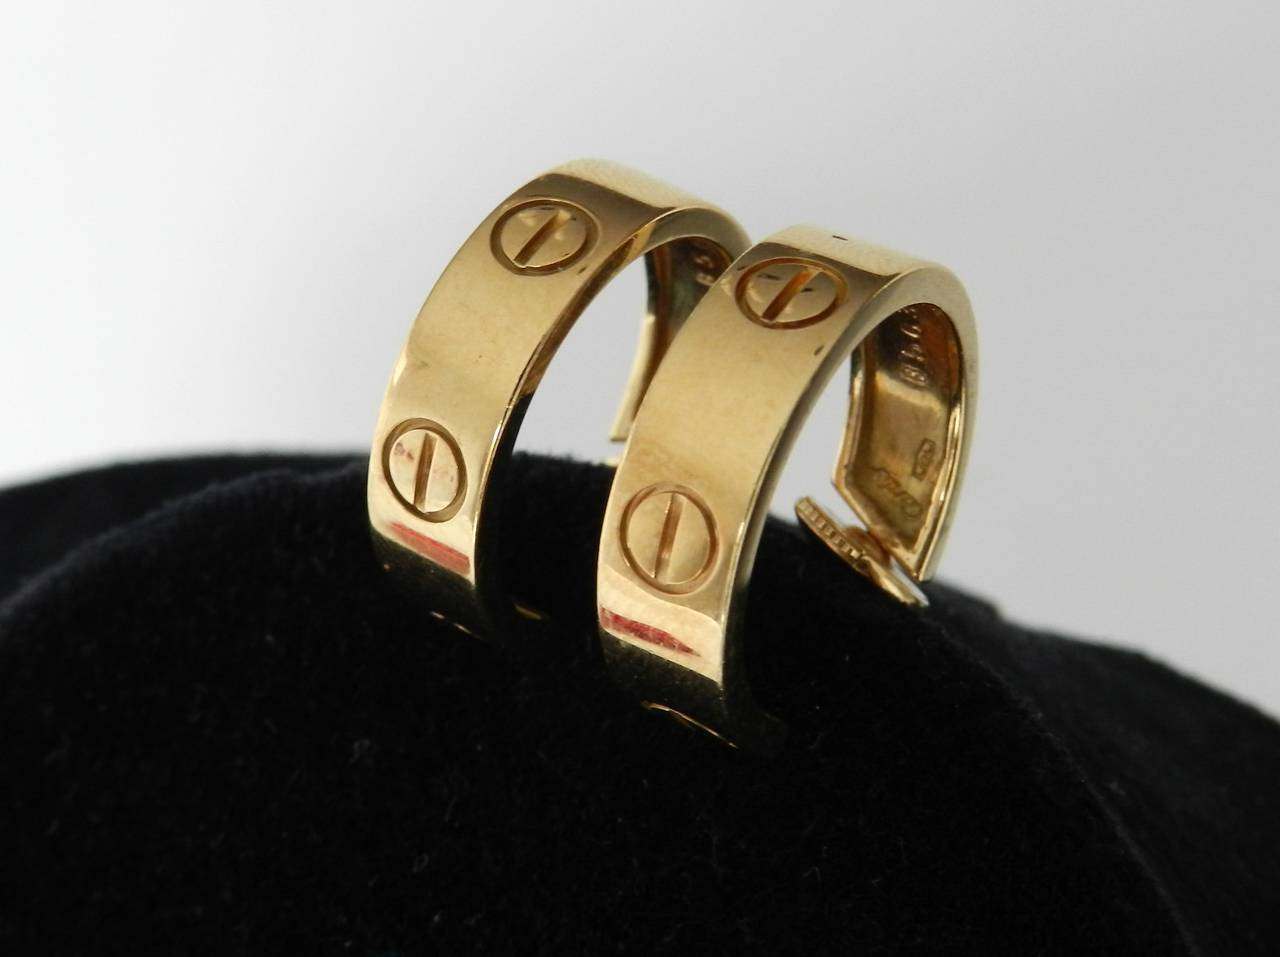 Cartier Gold Love Hoop Earrings In Excellent Condition For Sale In Toronto, Ontario